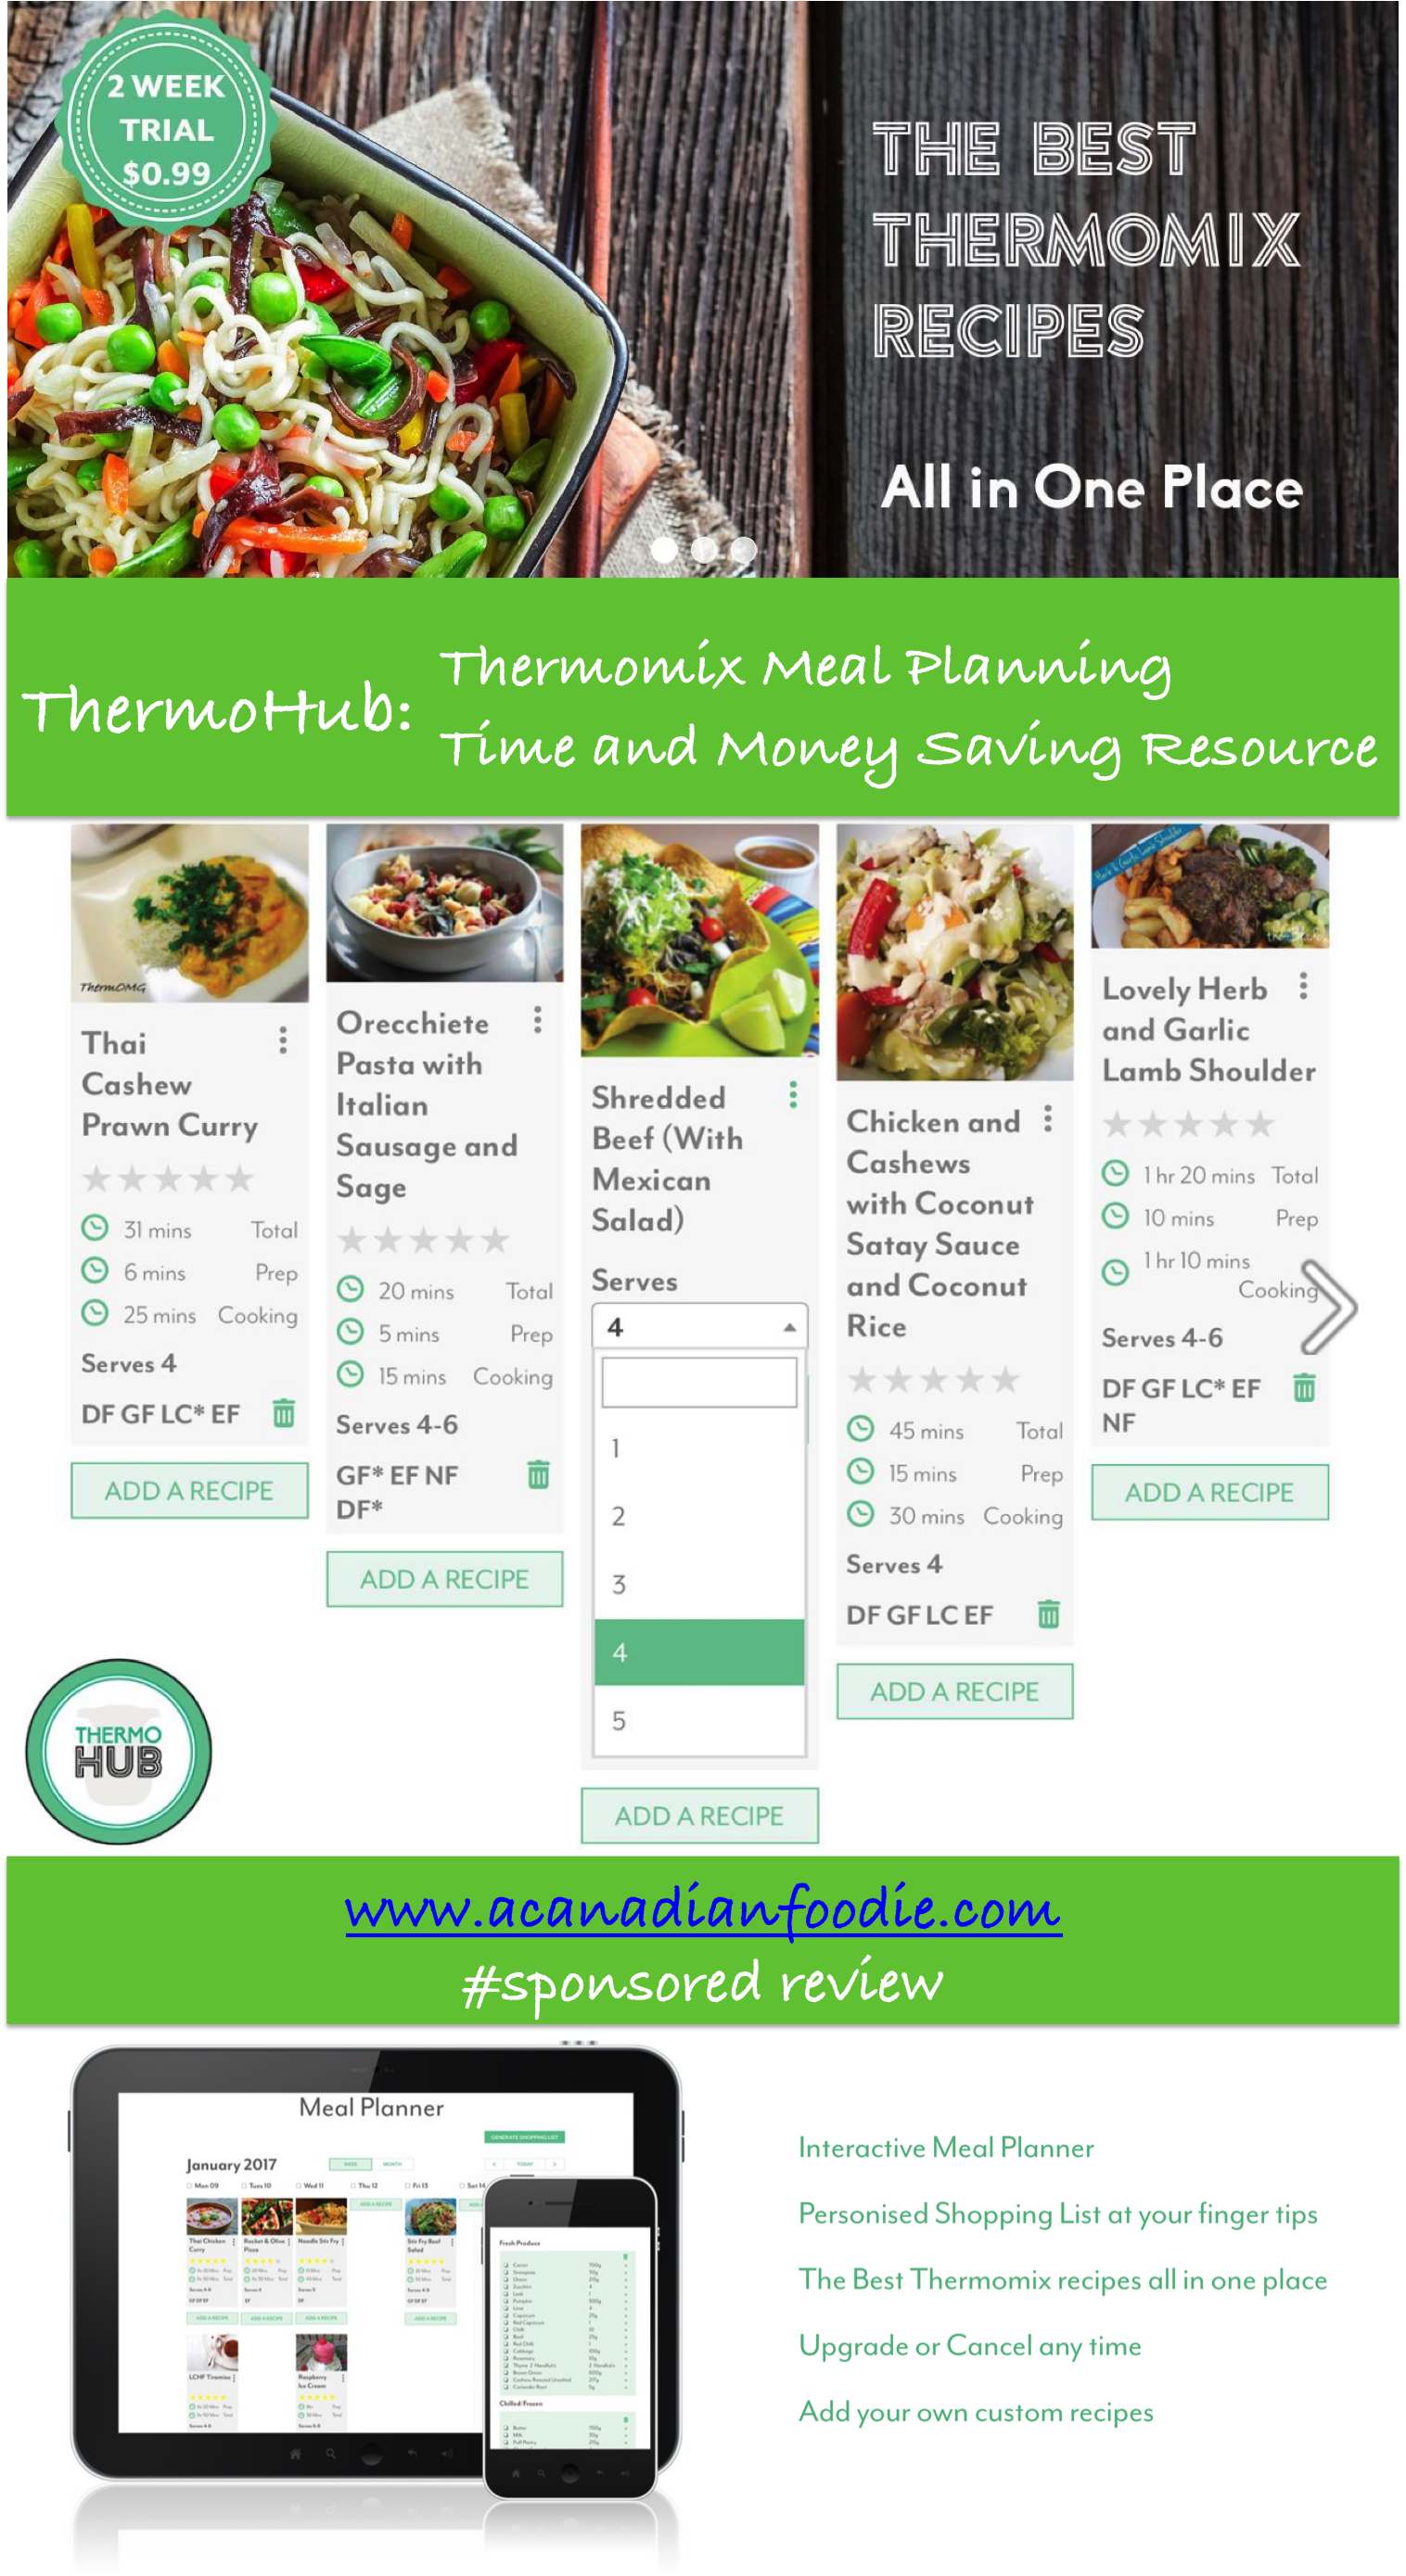 ThermoHub Thermomix Meal Planning: The New Center of the Universe